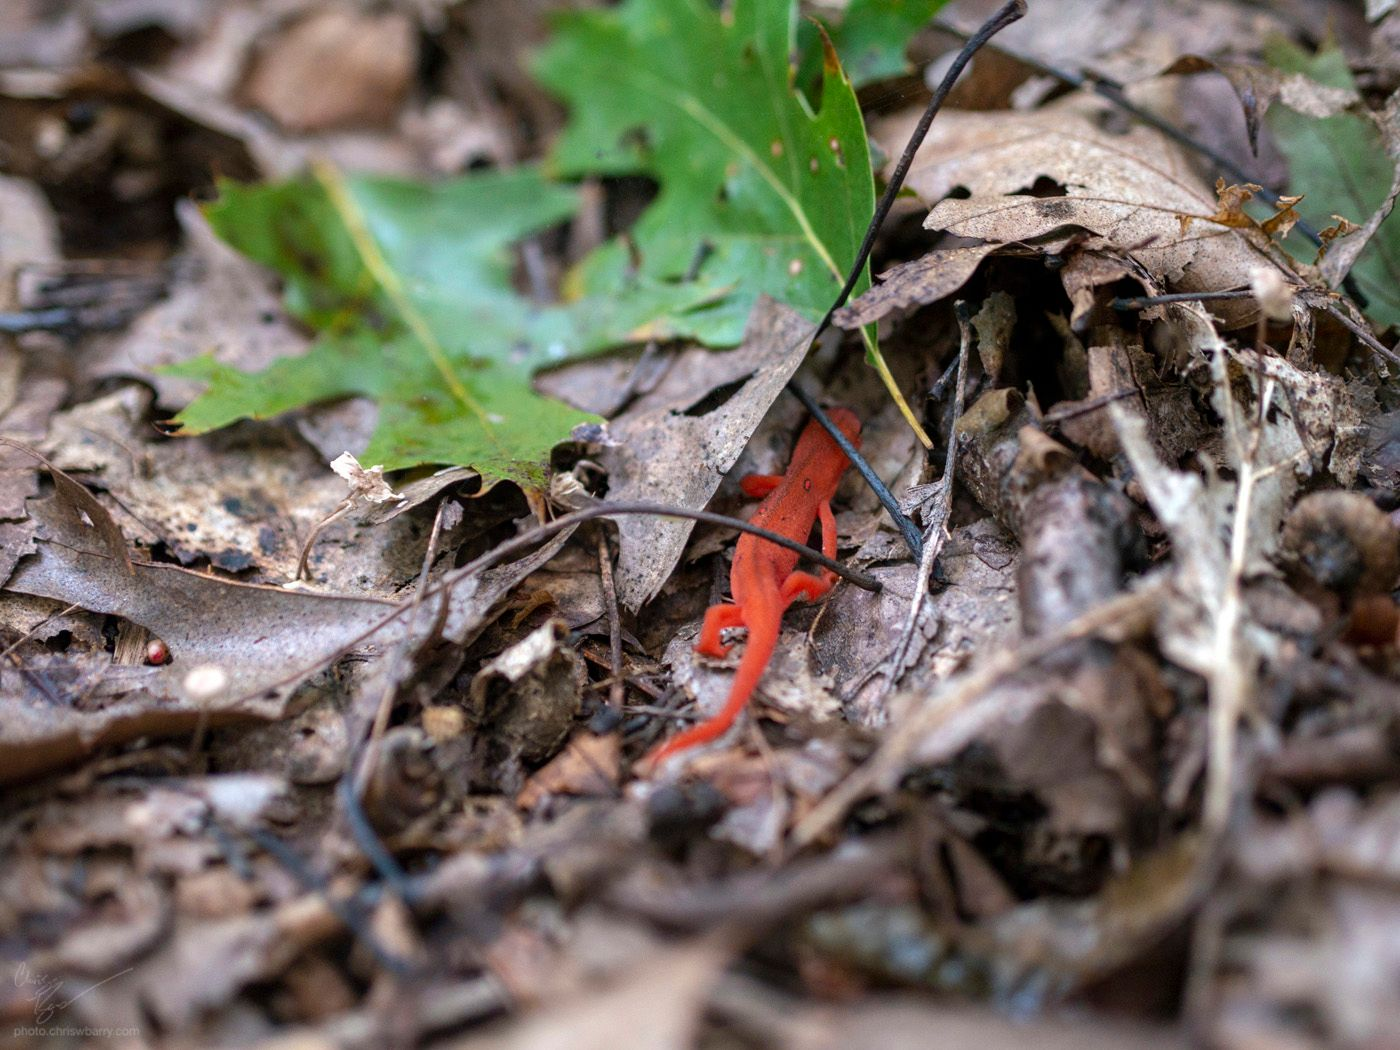 10-06-18: Red Spotted Newt